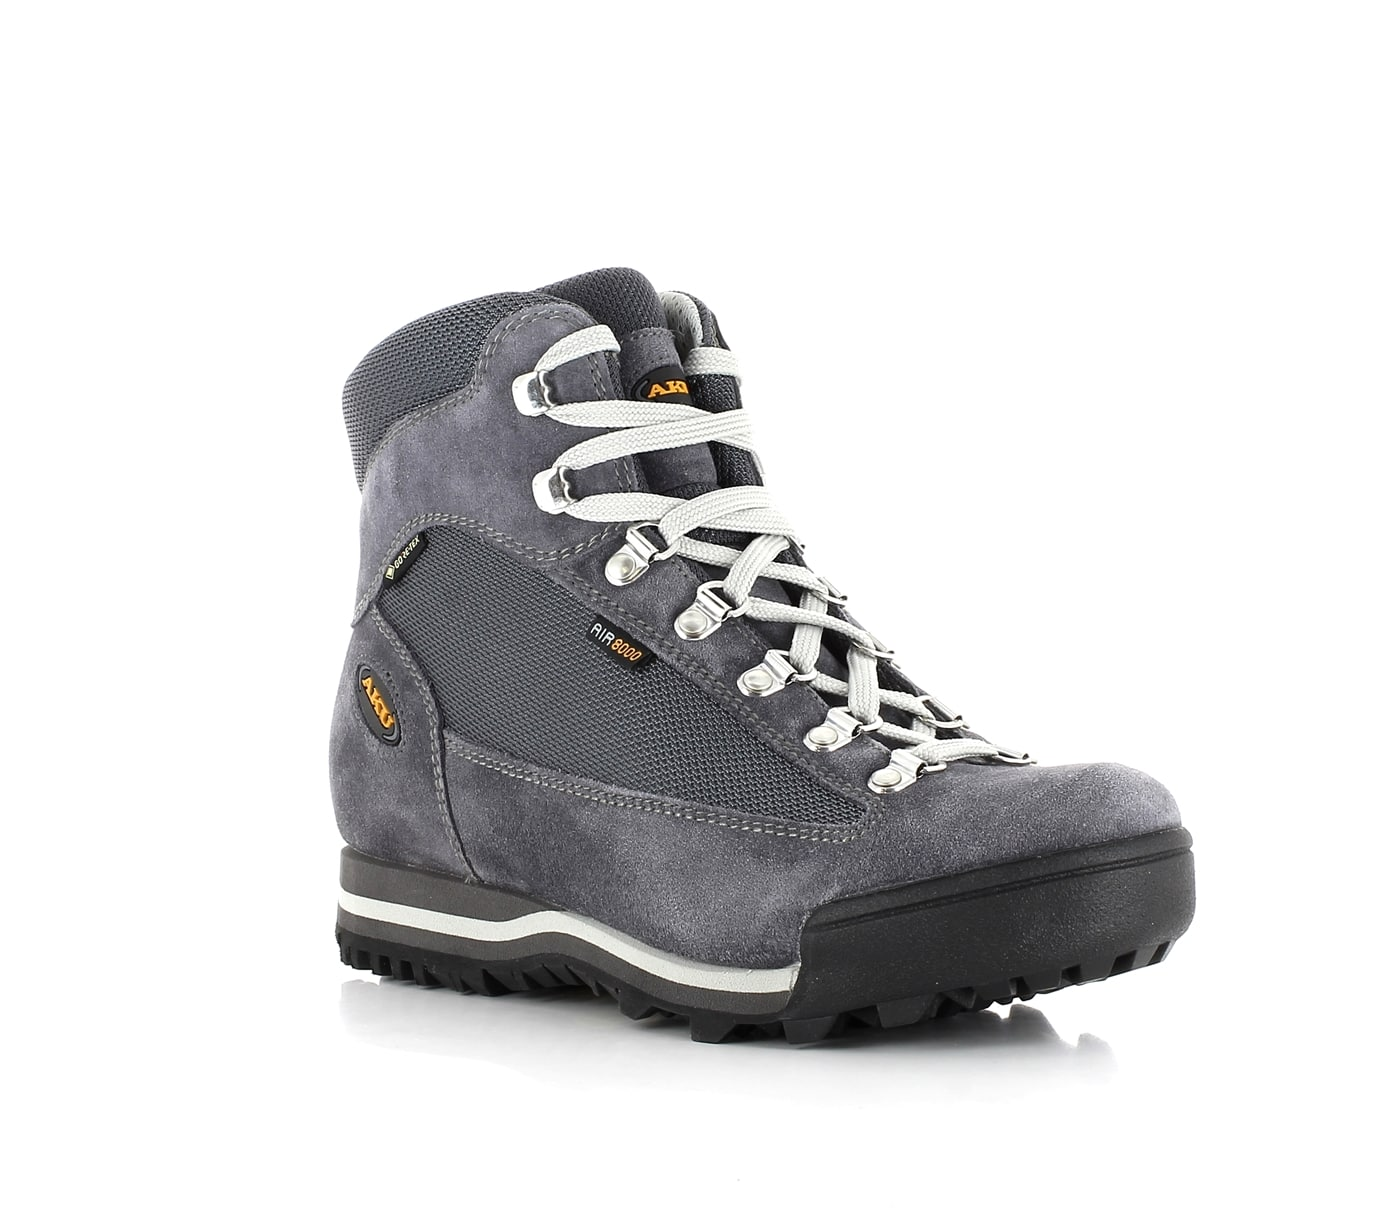 AKU Ultralight Micro GTW grey/steam Wanderschuhe 2